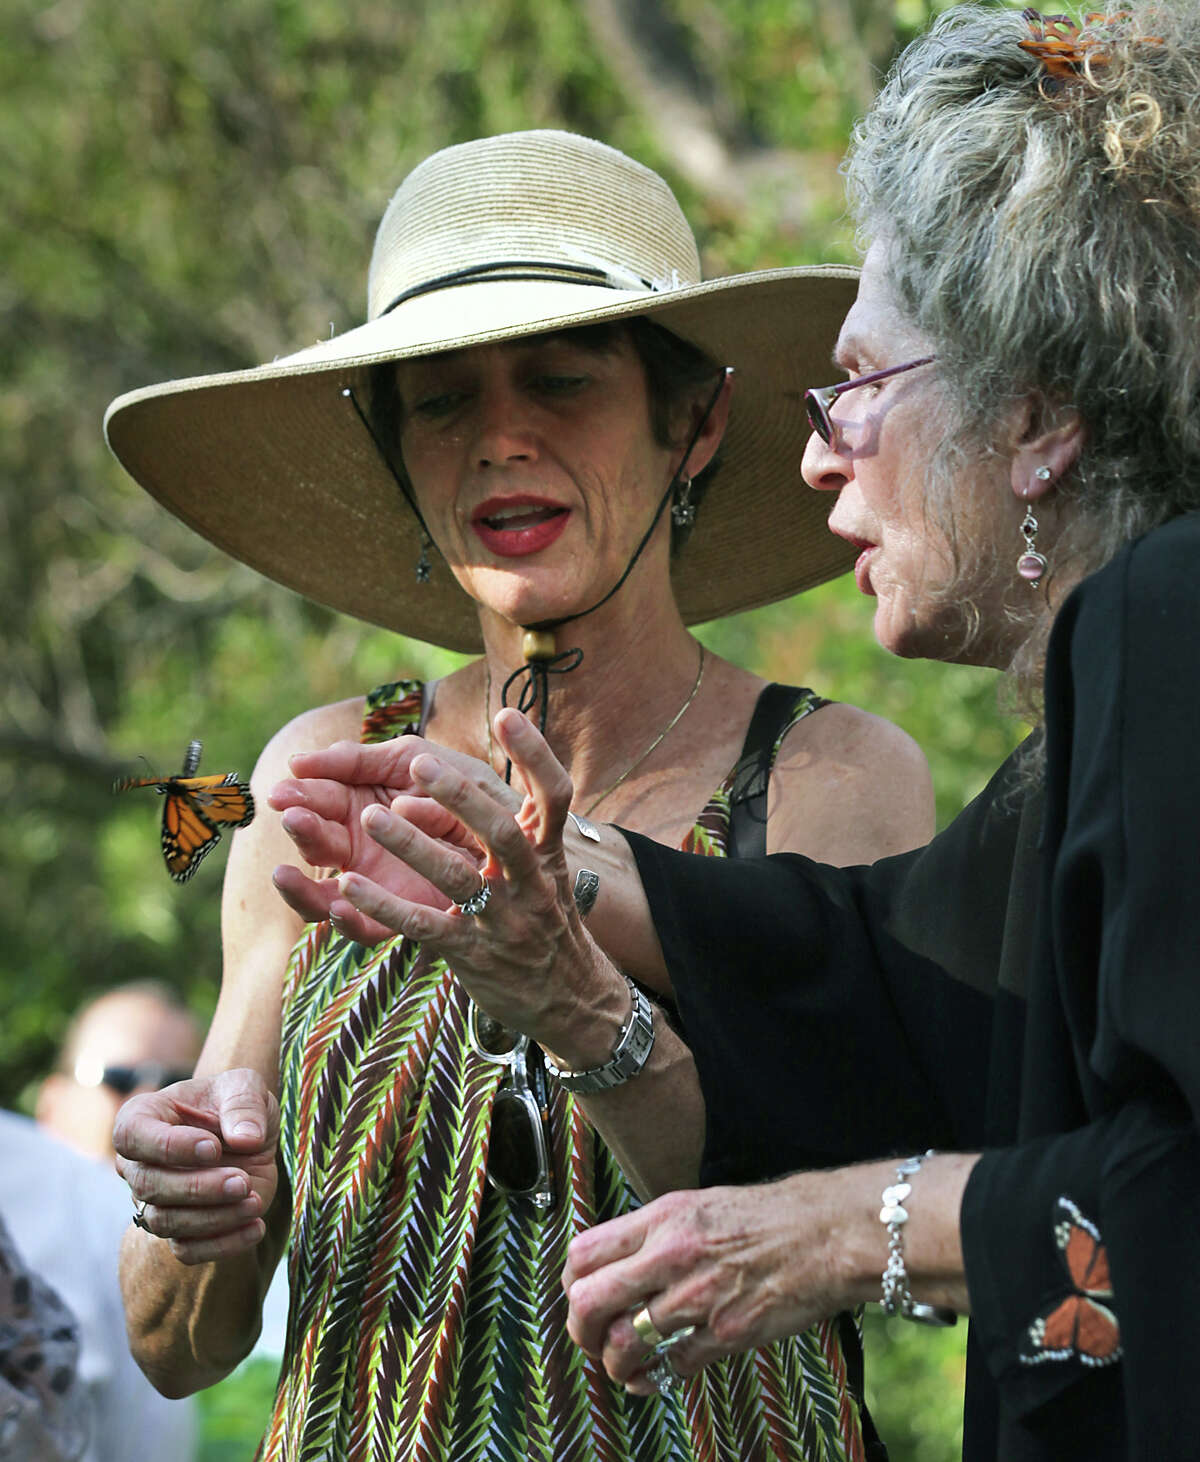 """Maraleen Manos-Jones, right, known as """"Lady with butterflies"""", and Monika Maeckle frees a monarch at the San Antonio Botanical Garden who had strayed in Albany."""